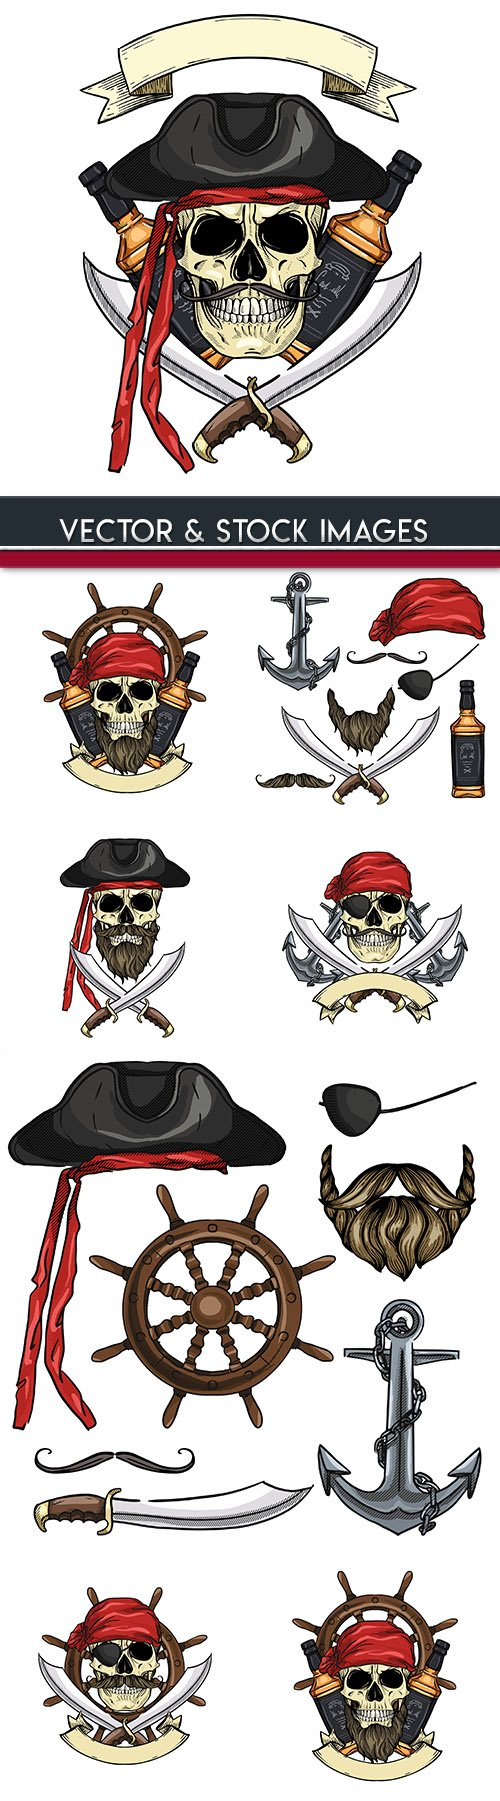 Pirates and weapons with clothing painted illustrations